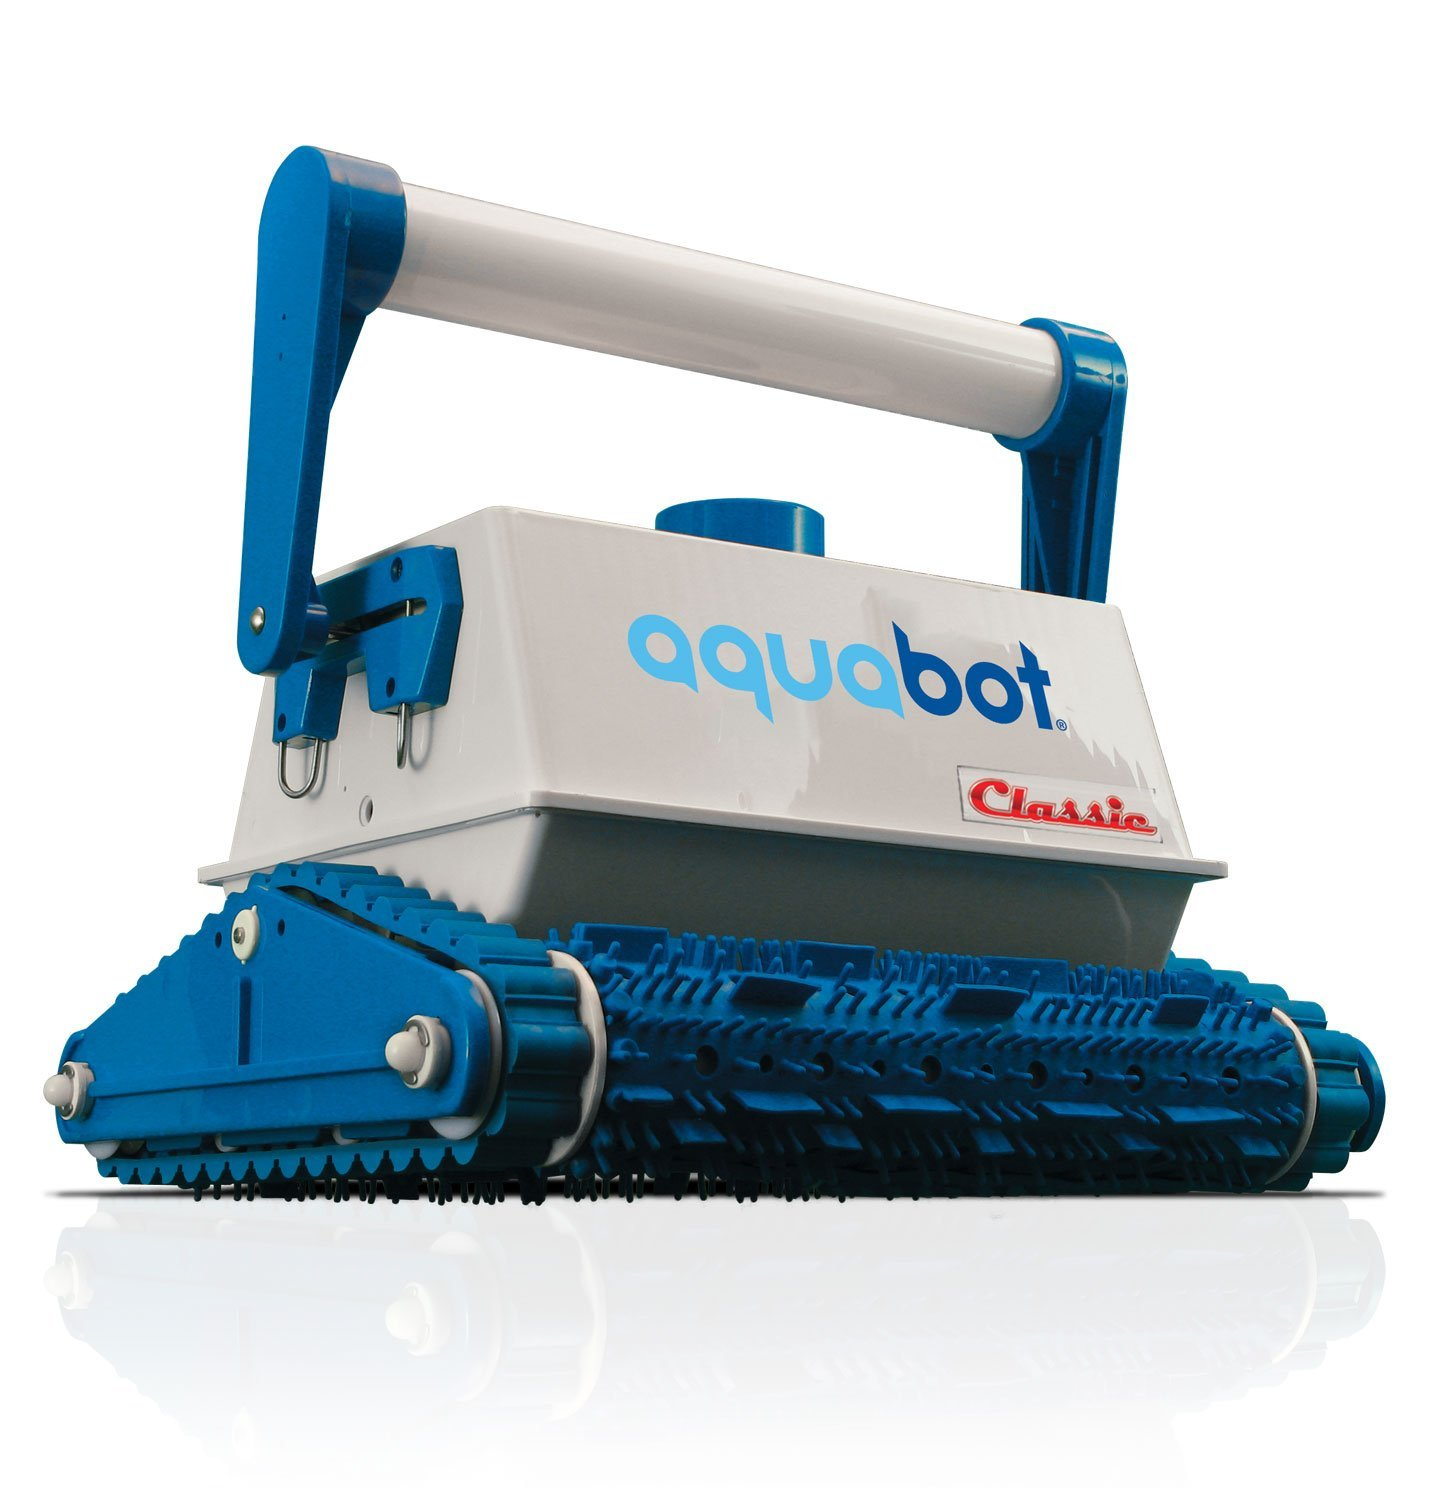 aquabot-classic-pool-cleaner-review